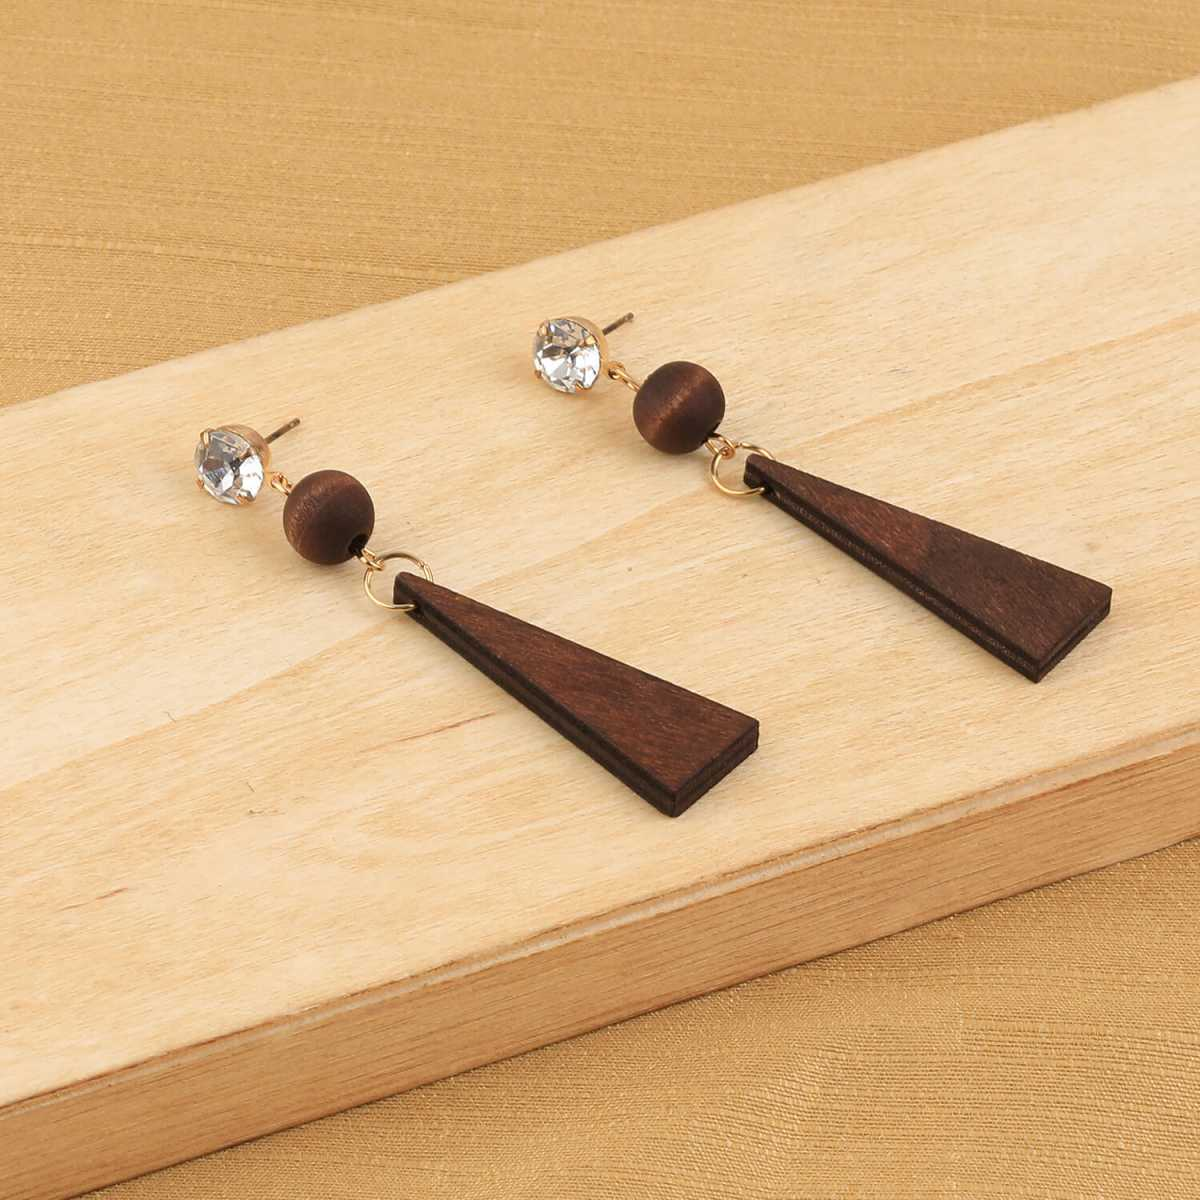 SILVER SHINE Delicate Natural Brown Wooden Dangler Diamond  Earrings for Girls and Women.